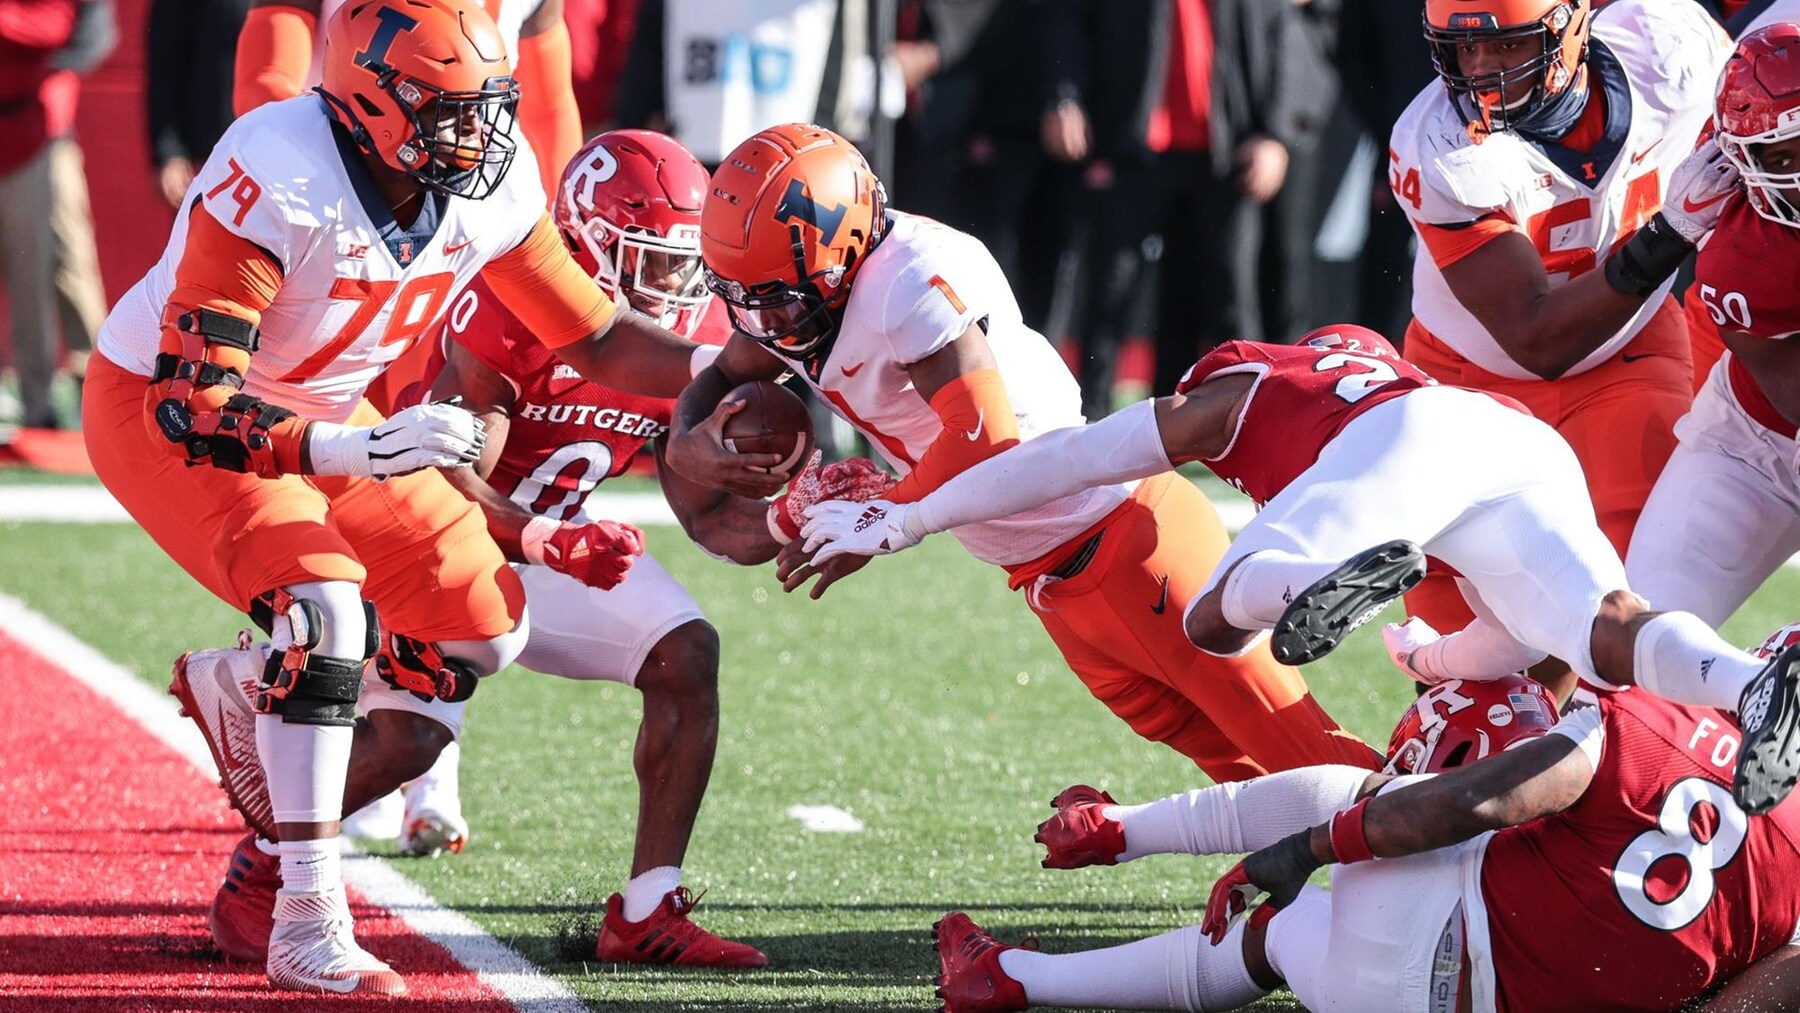 Isaiah Williams rushes for a touchdown